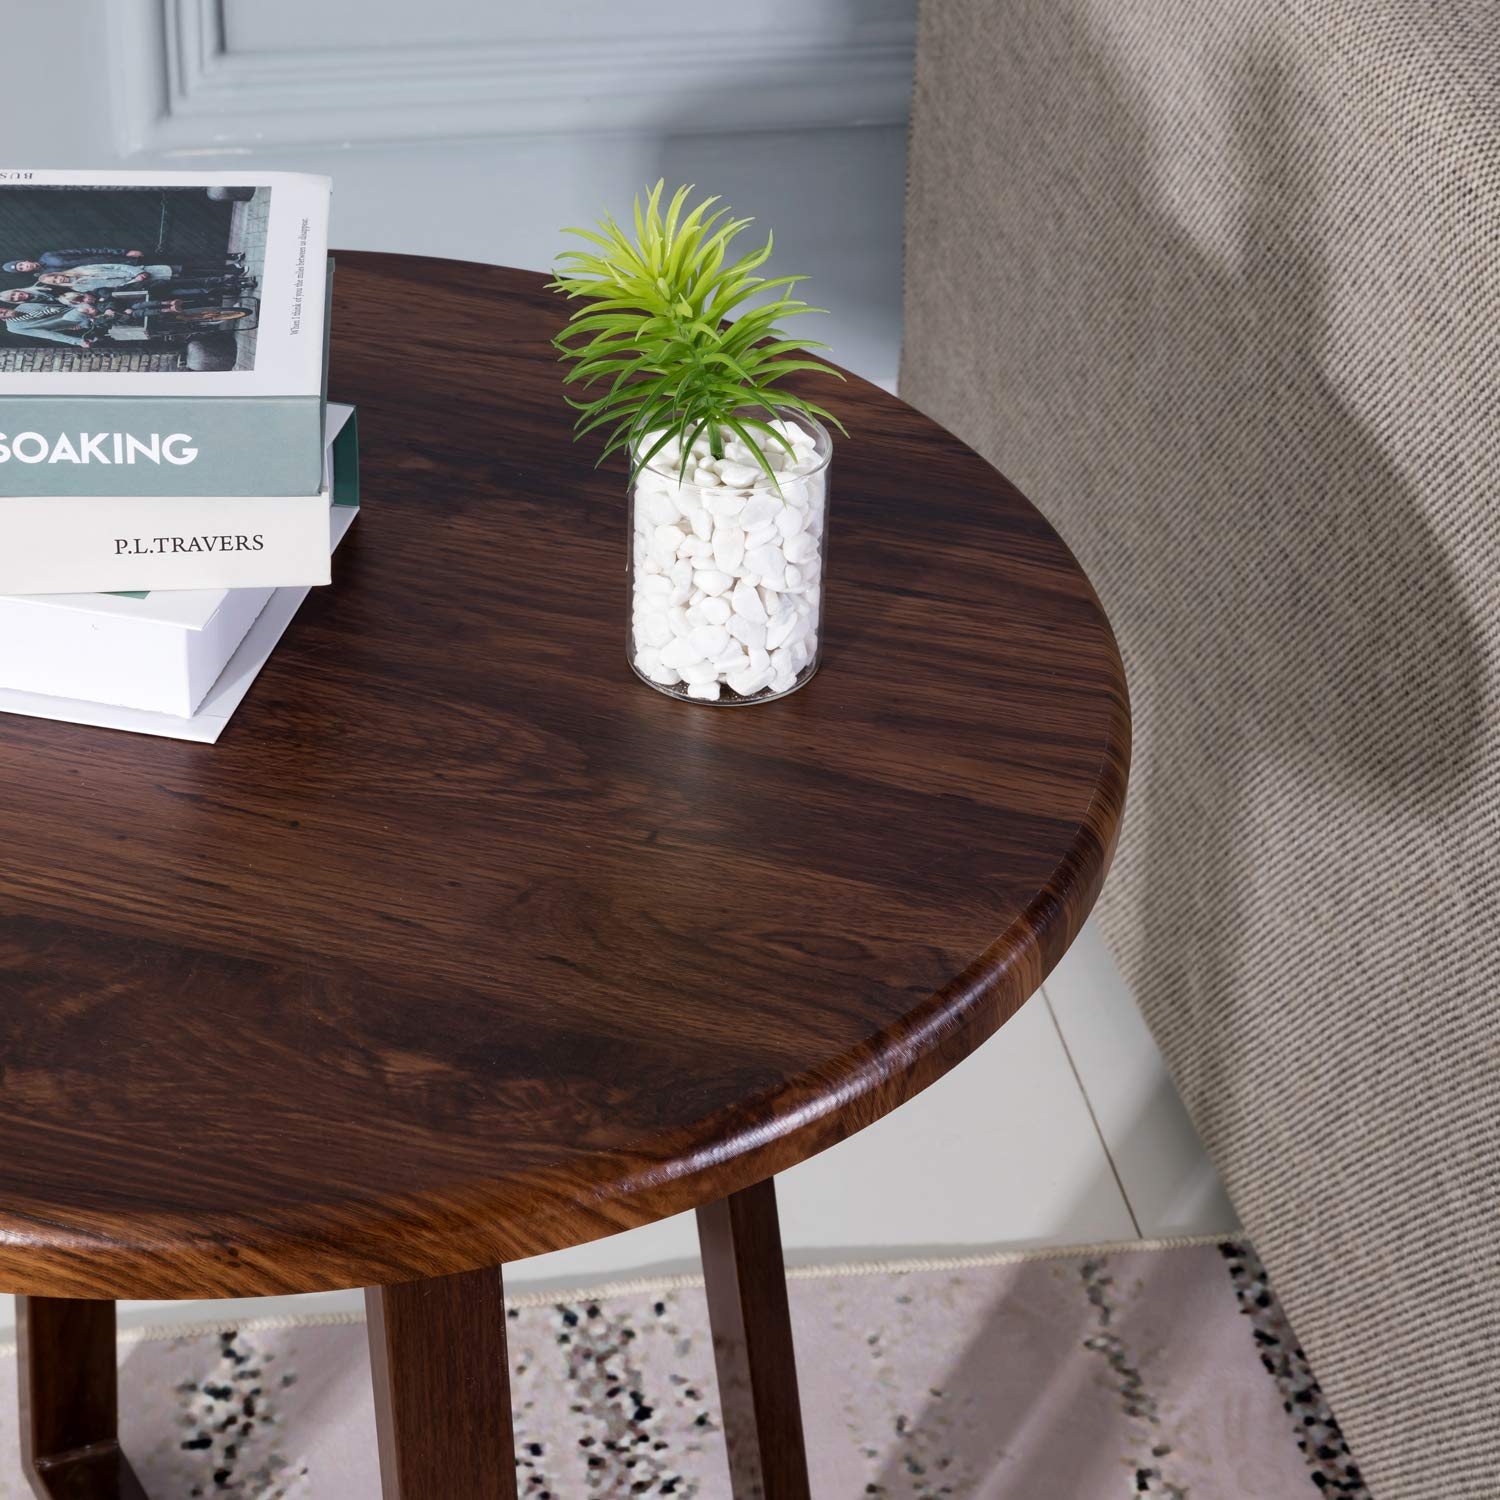 Height Of Coffee Table To Sofa: Walnut Living Room Office Coffee Table Side Sofa End Lamp